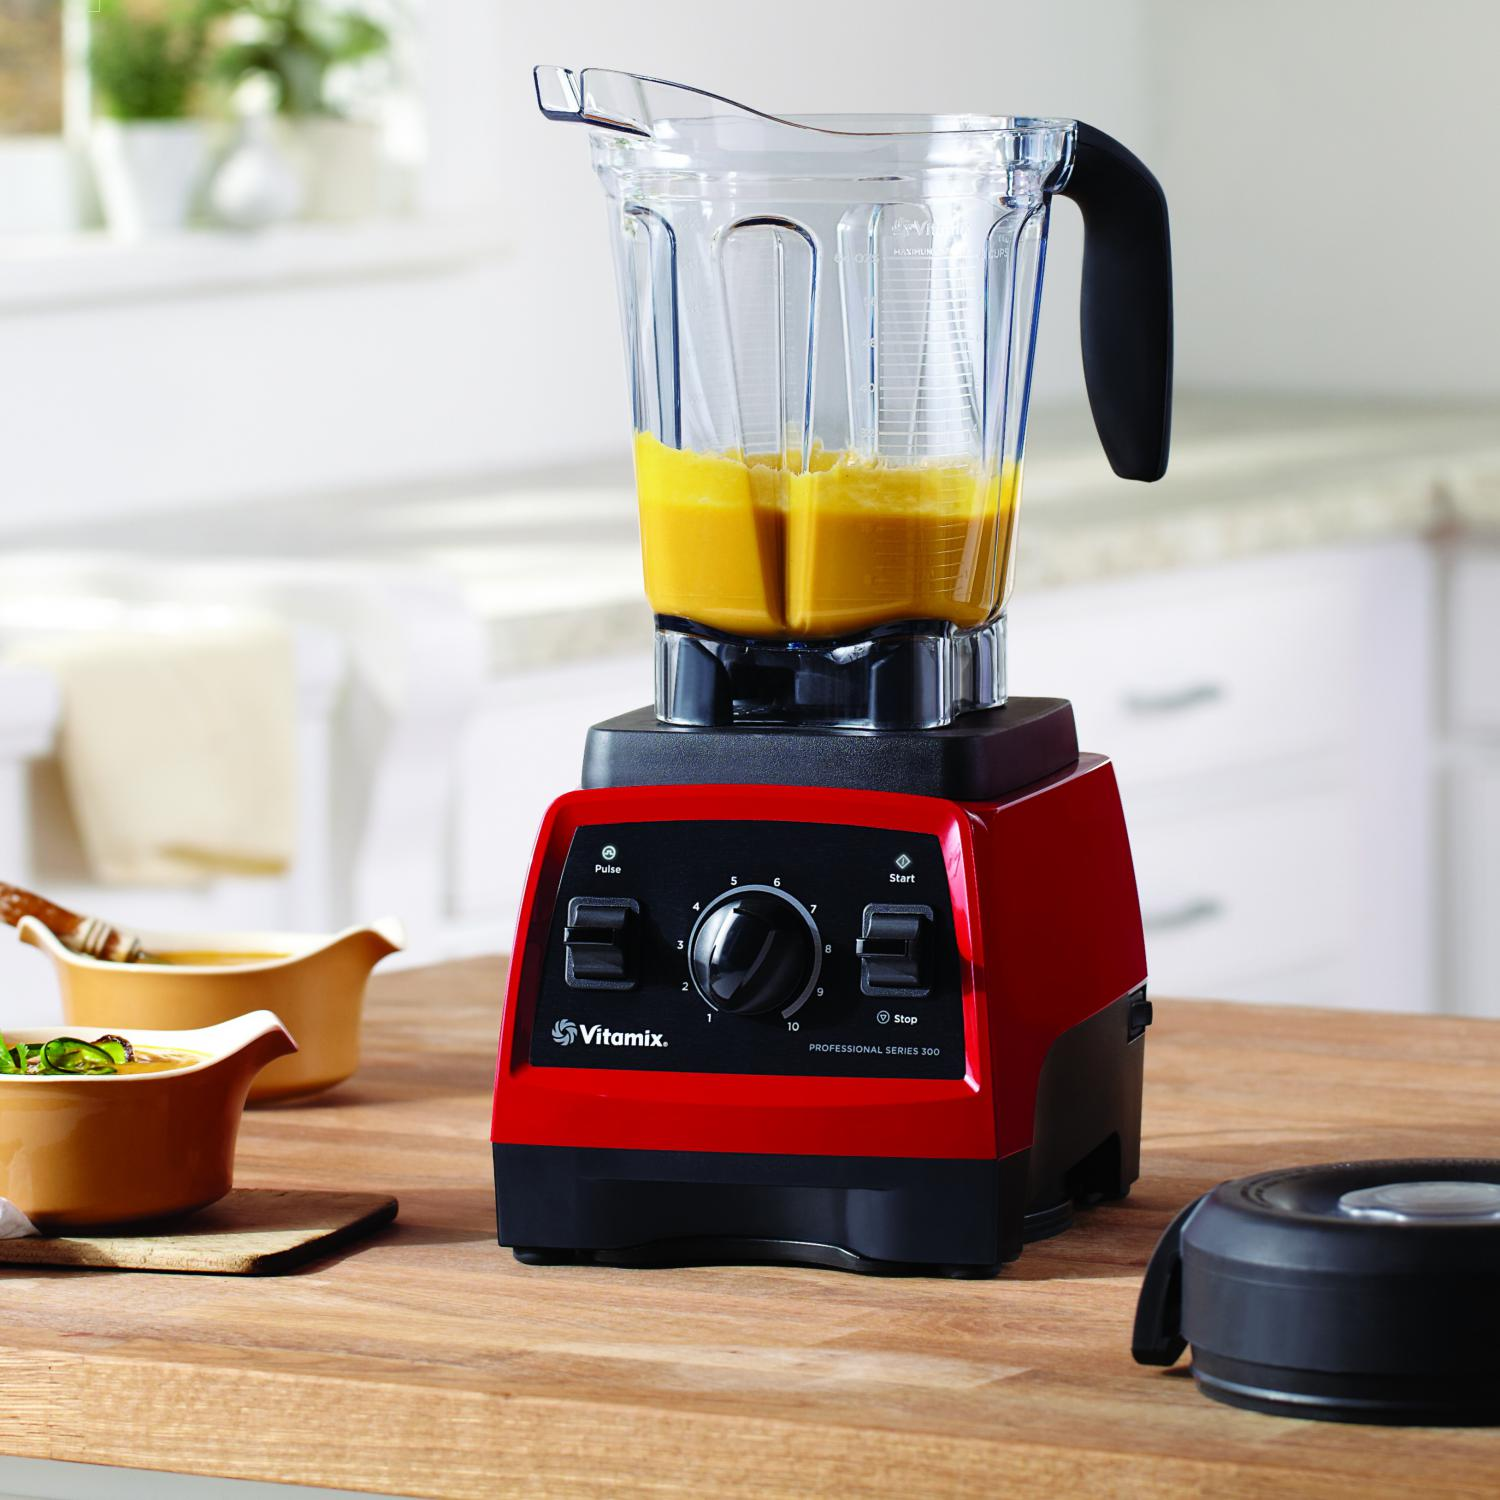 Vitamix Professional Series 300 Blender - Ruby